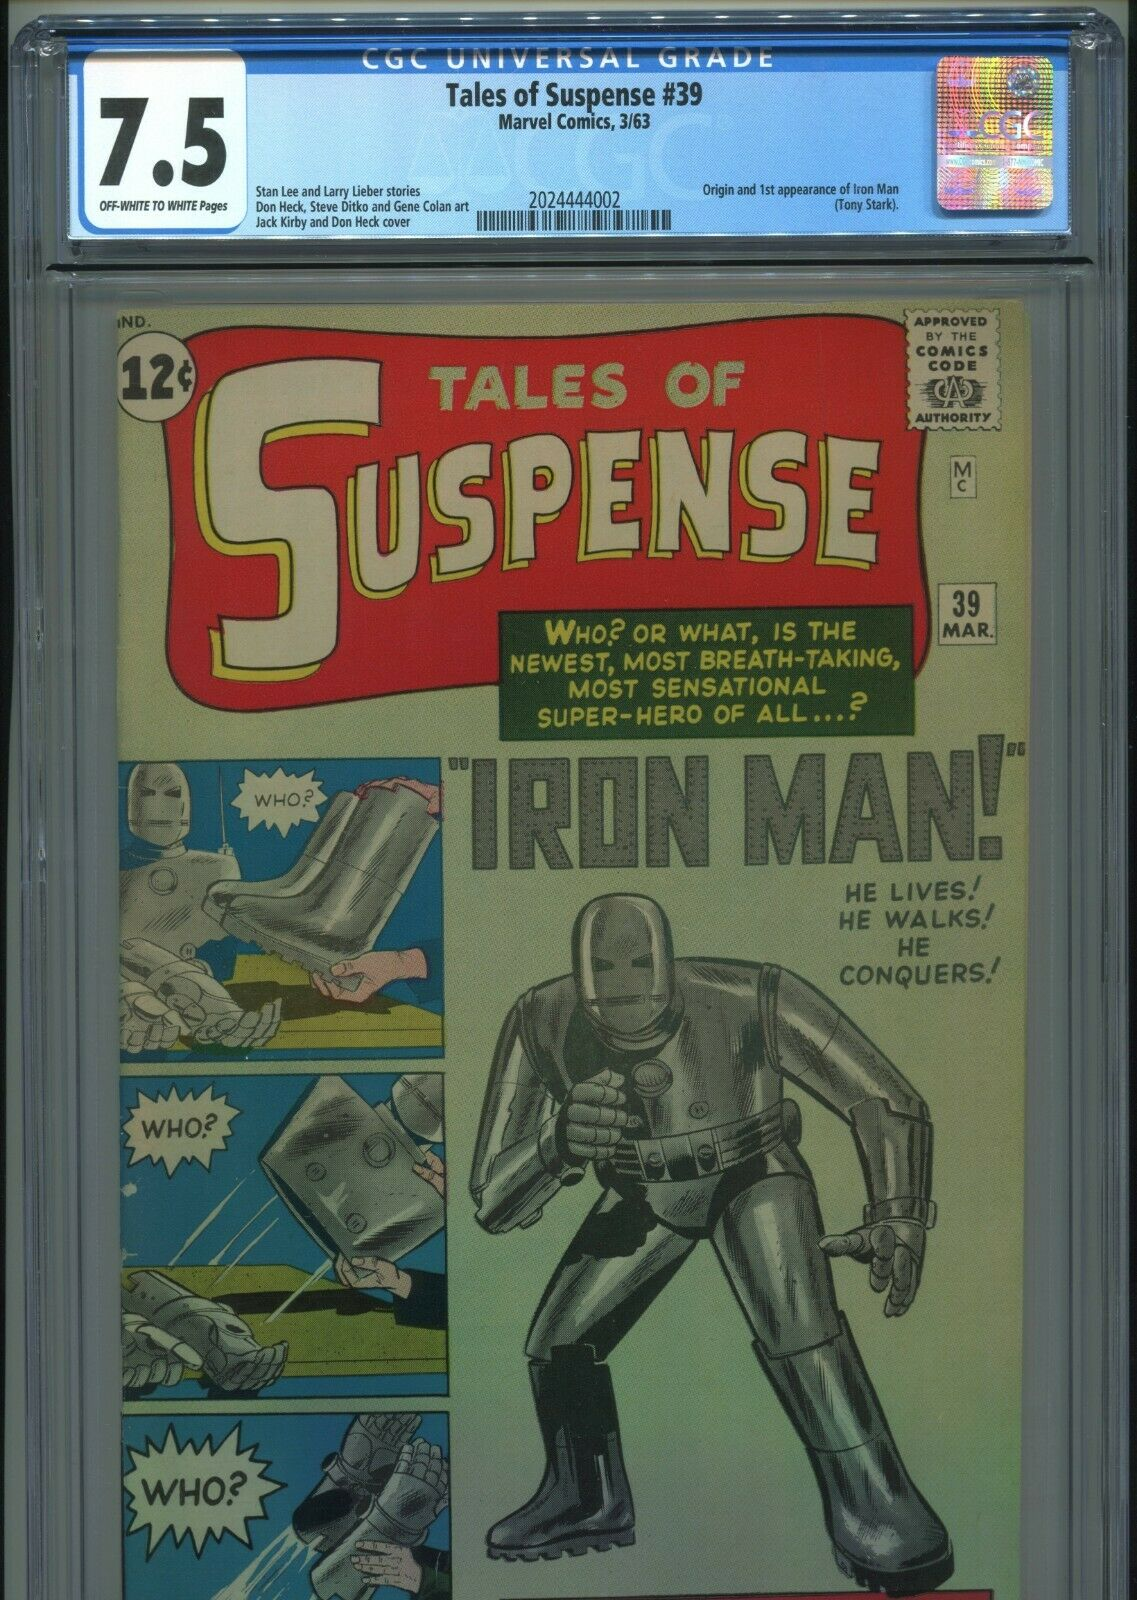 1963 MARVEL TALES OF SUSPENSE #39 1ST APPEARANCE IRON MAN CGC 7.5 OW-W AVENGERS